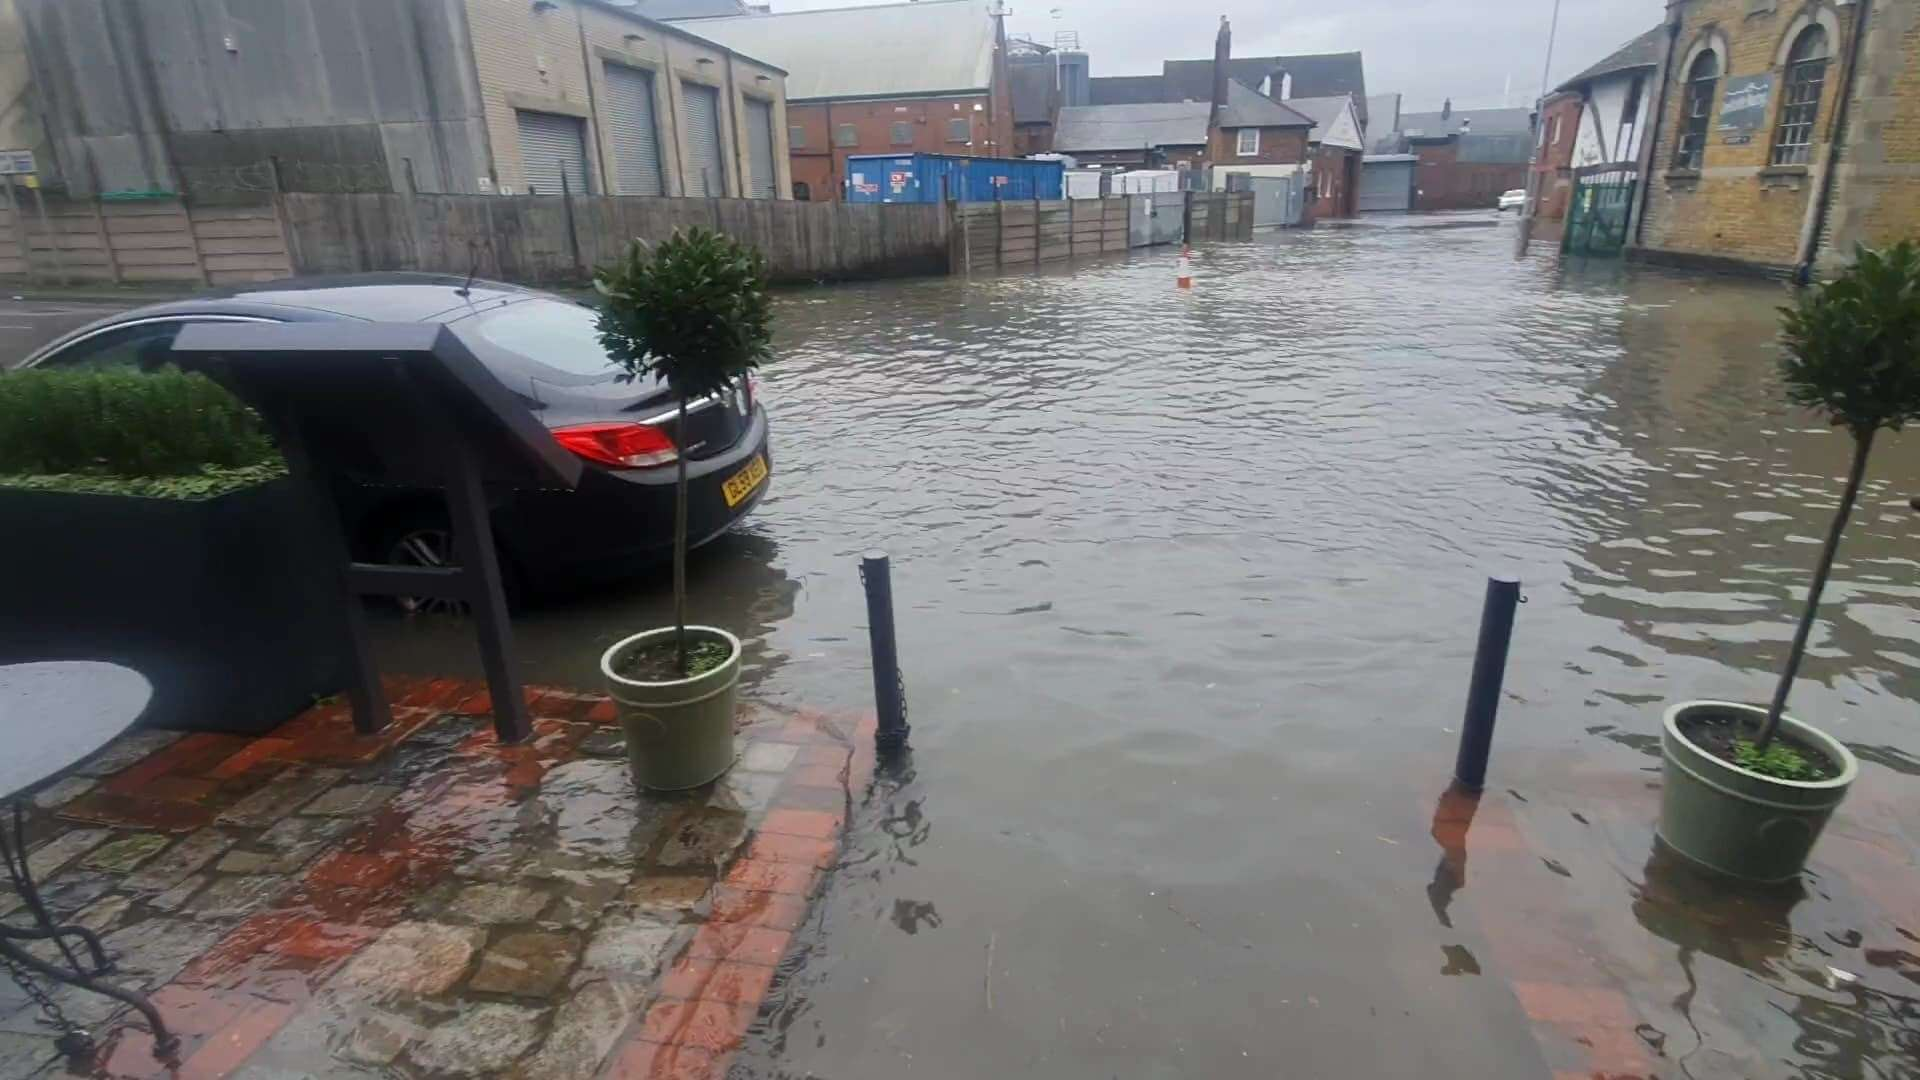 Flooding in Faversham isn't irregular, but the tide today was very high